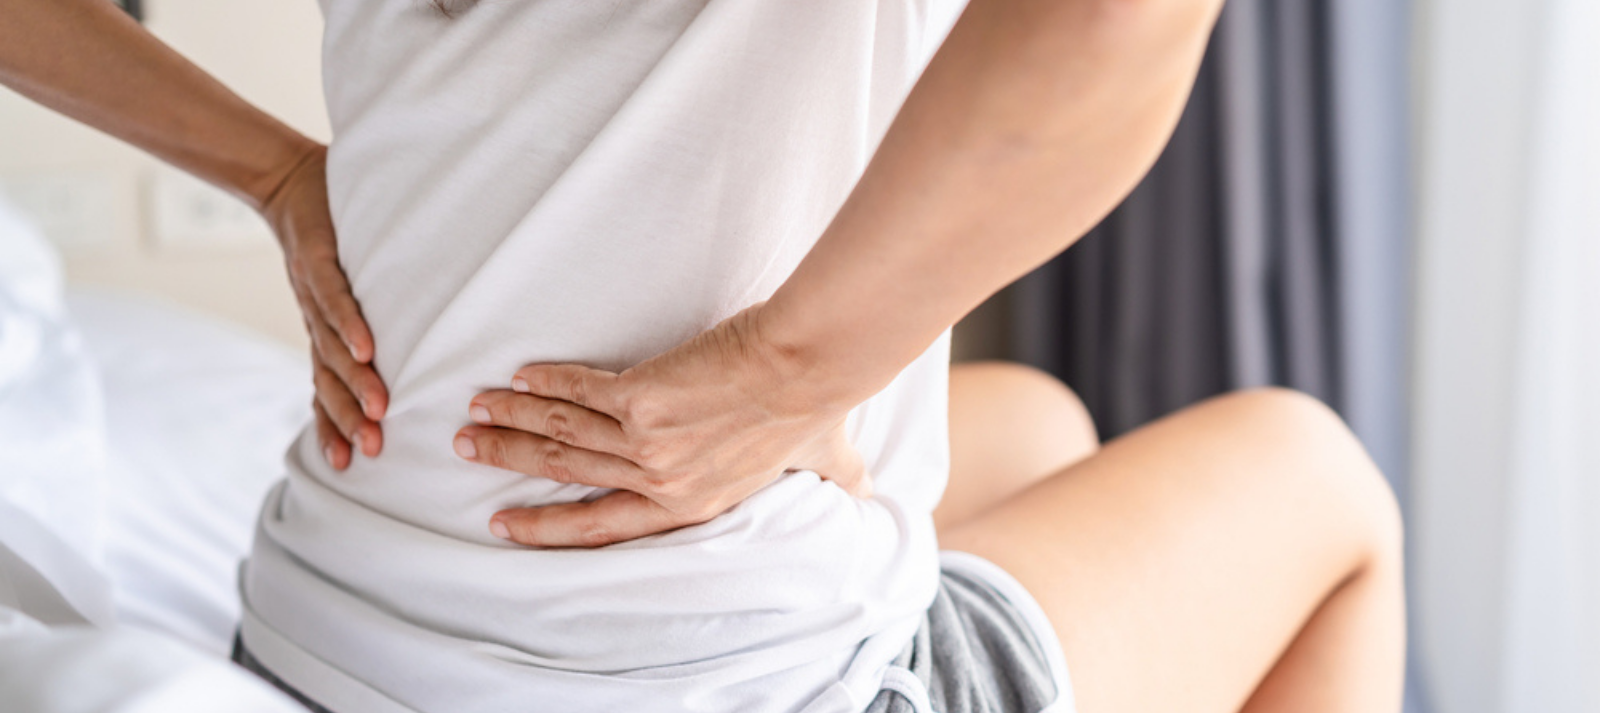 Massage Oils For Aches And Pains thumbnail image